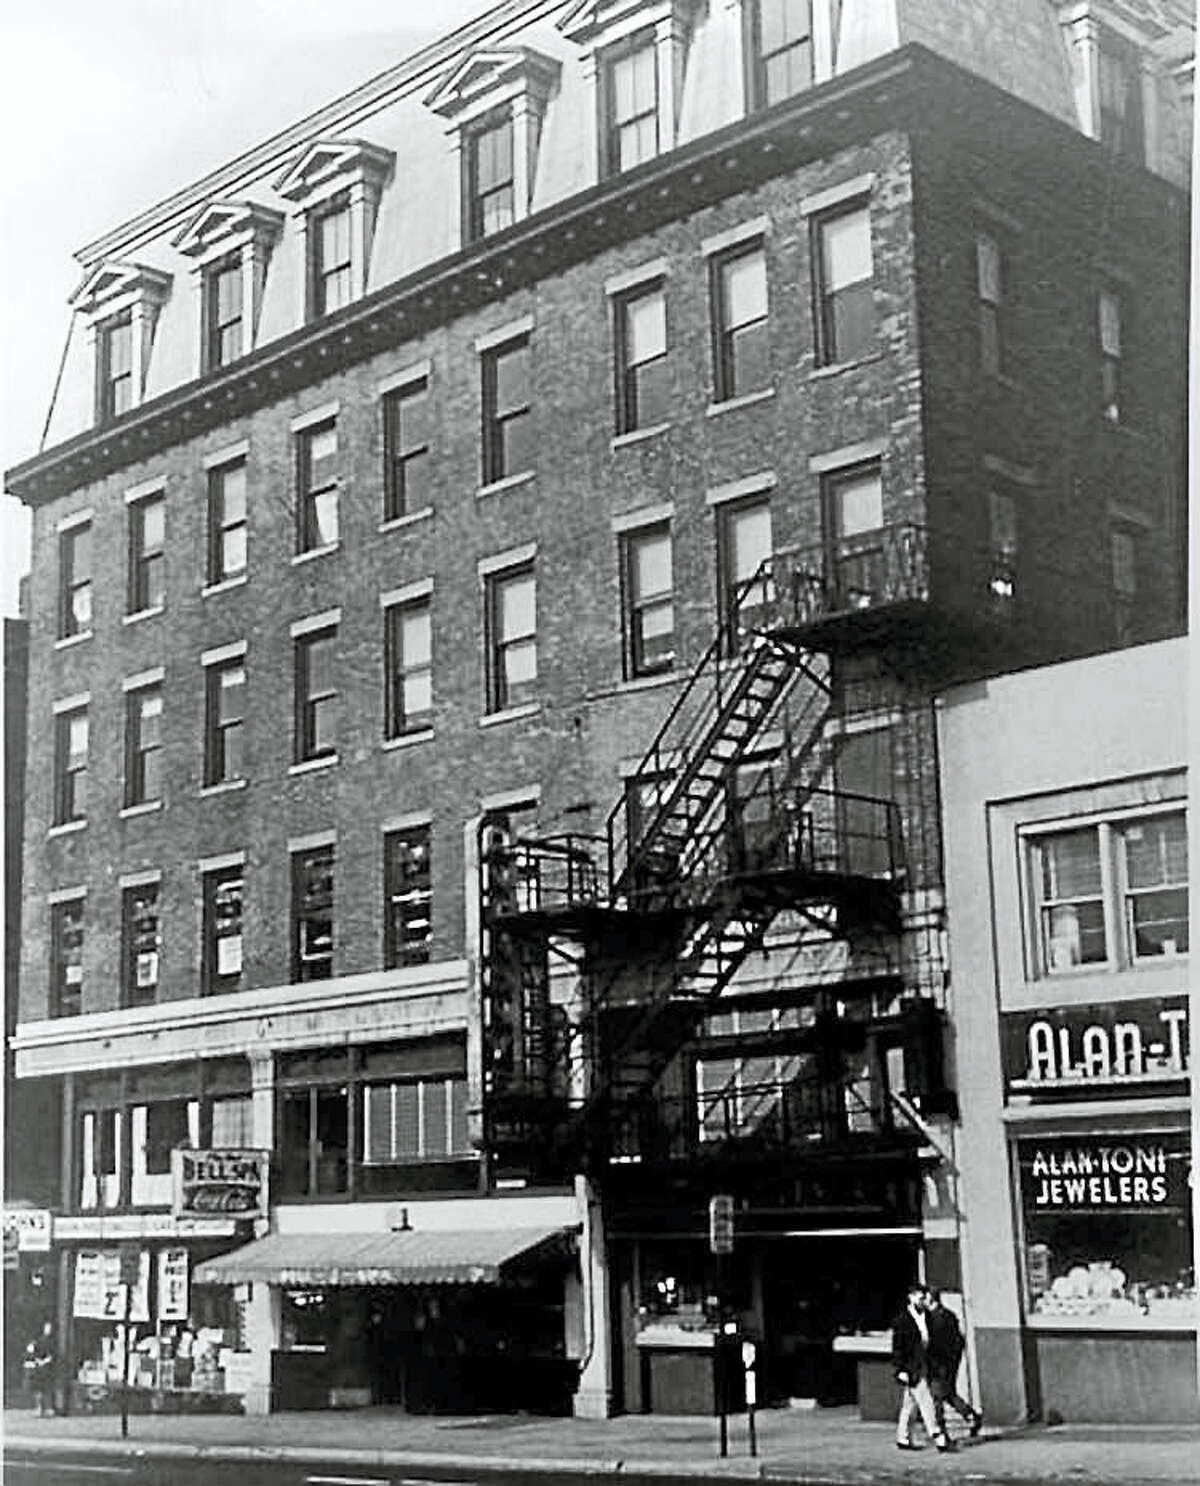 The New Haven District Telephone office and the first telephone exchange were located in New Haven, in the storefront with the awning (since demolished).